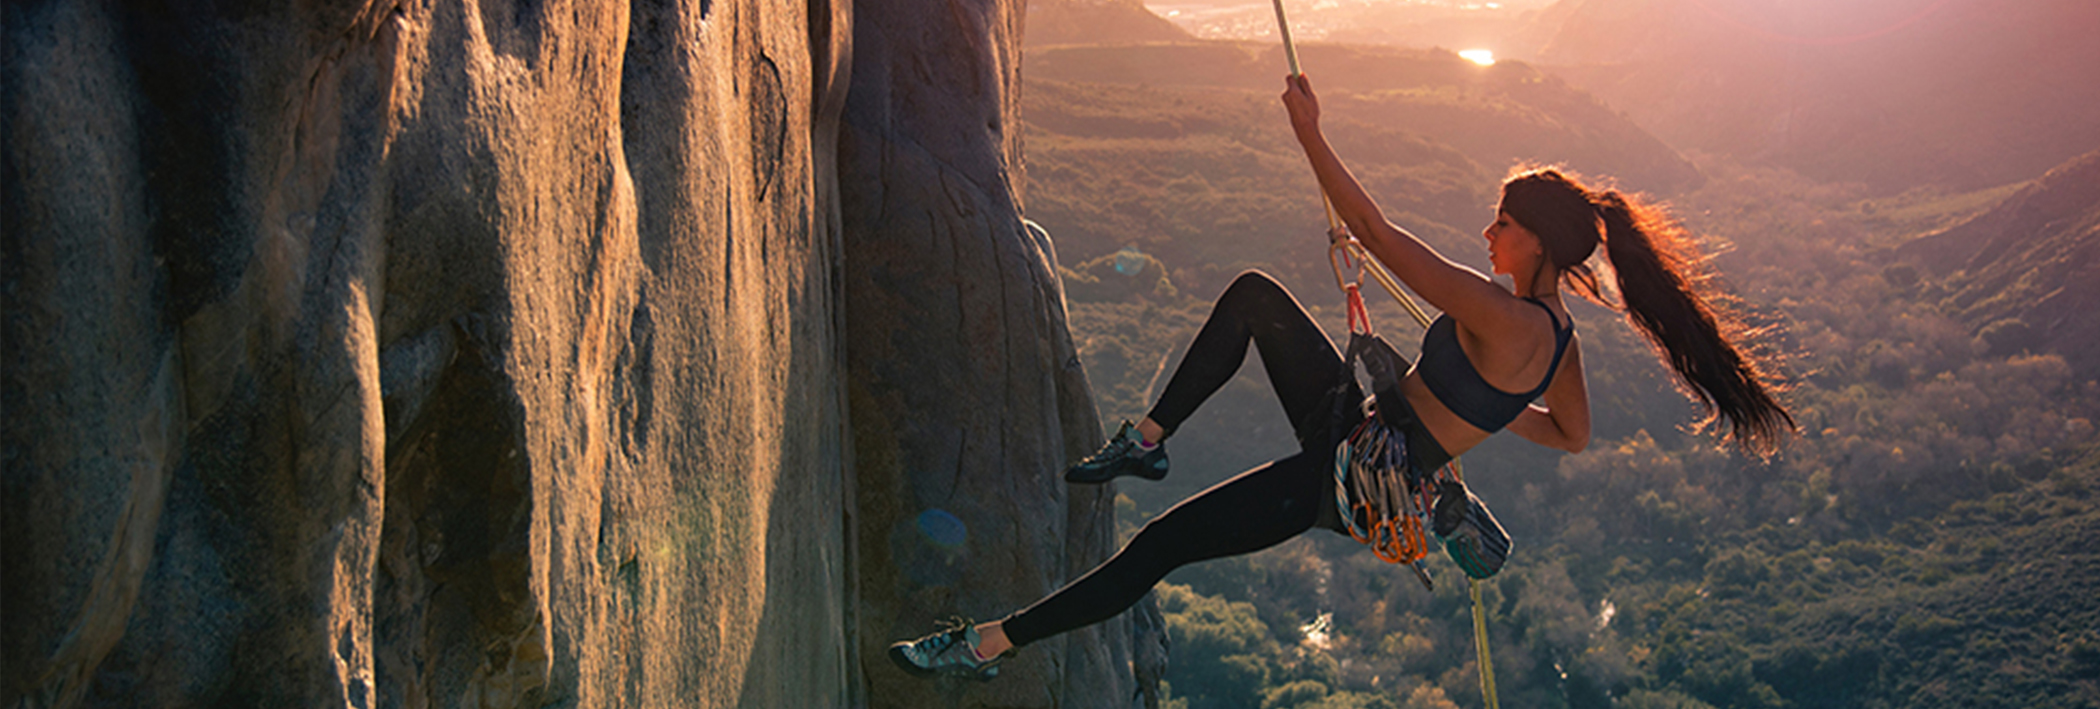 Woman rock climber scaling a rock wall - ithriveX pain relief cream provides relief for sore muscles and joints.